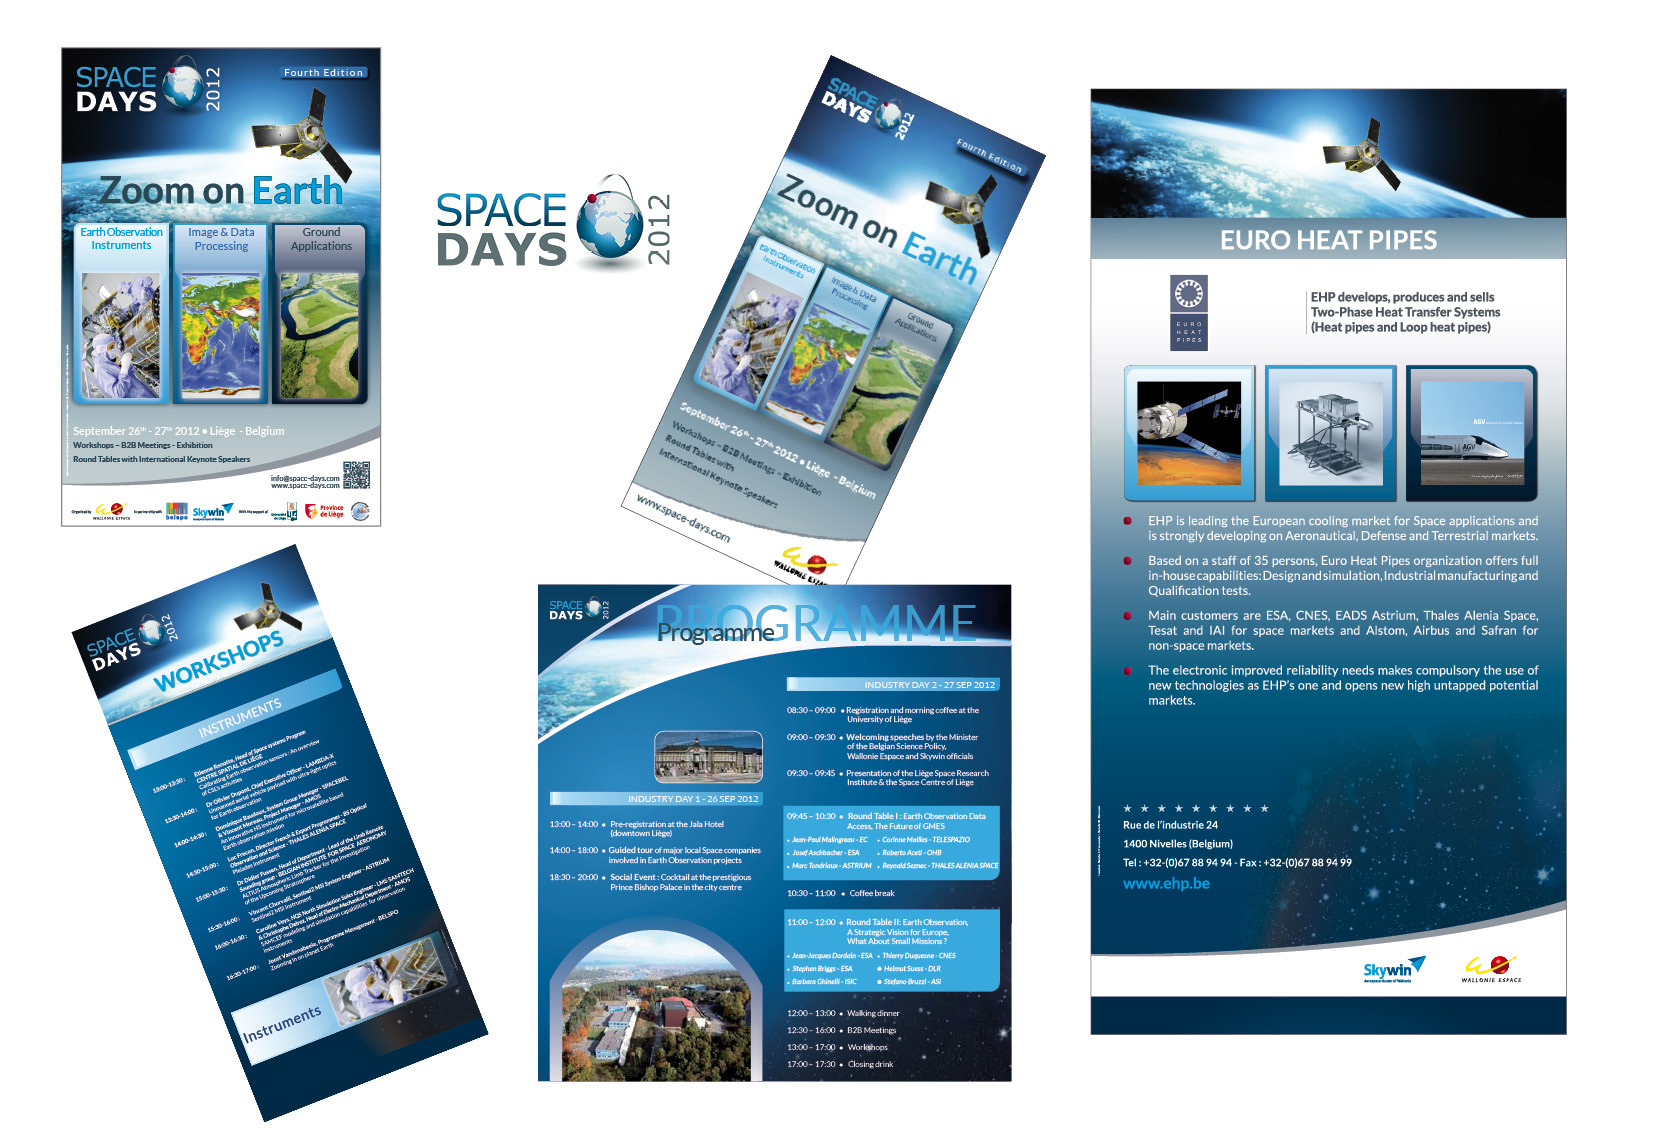 Wallonie Espace - Space Days